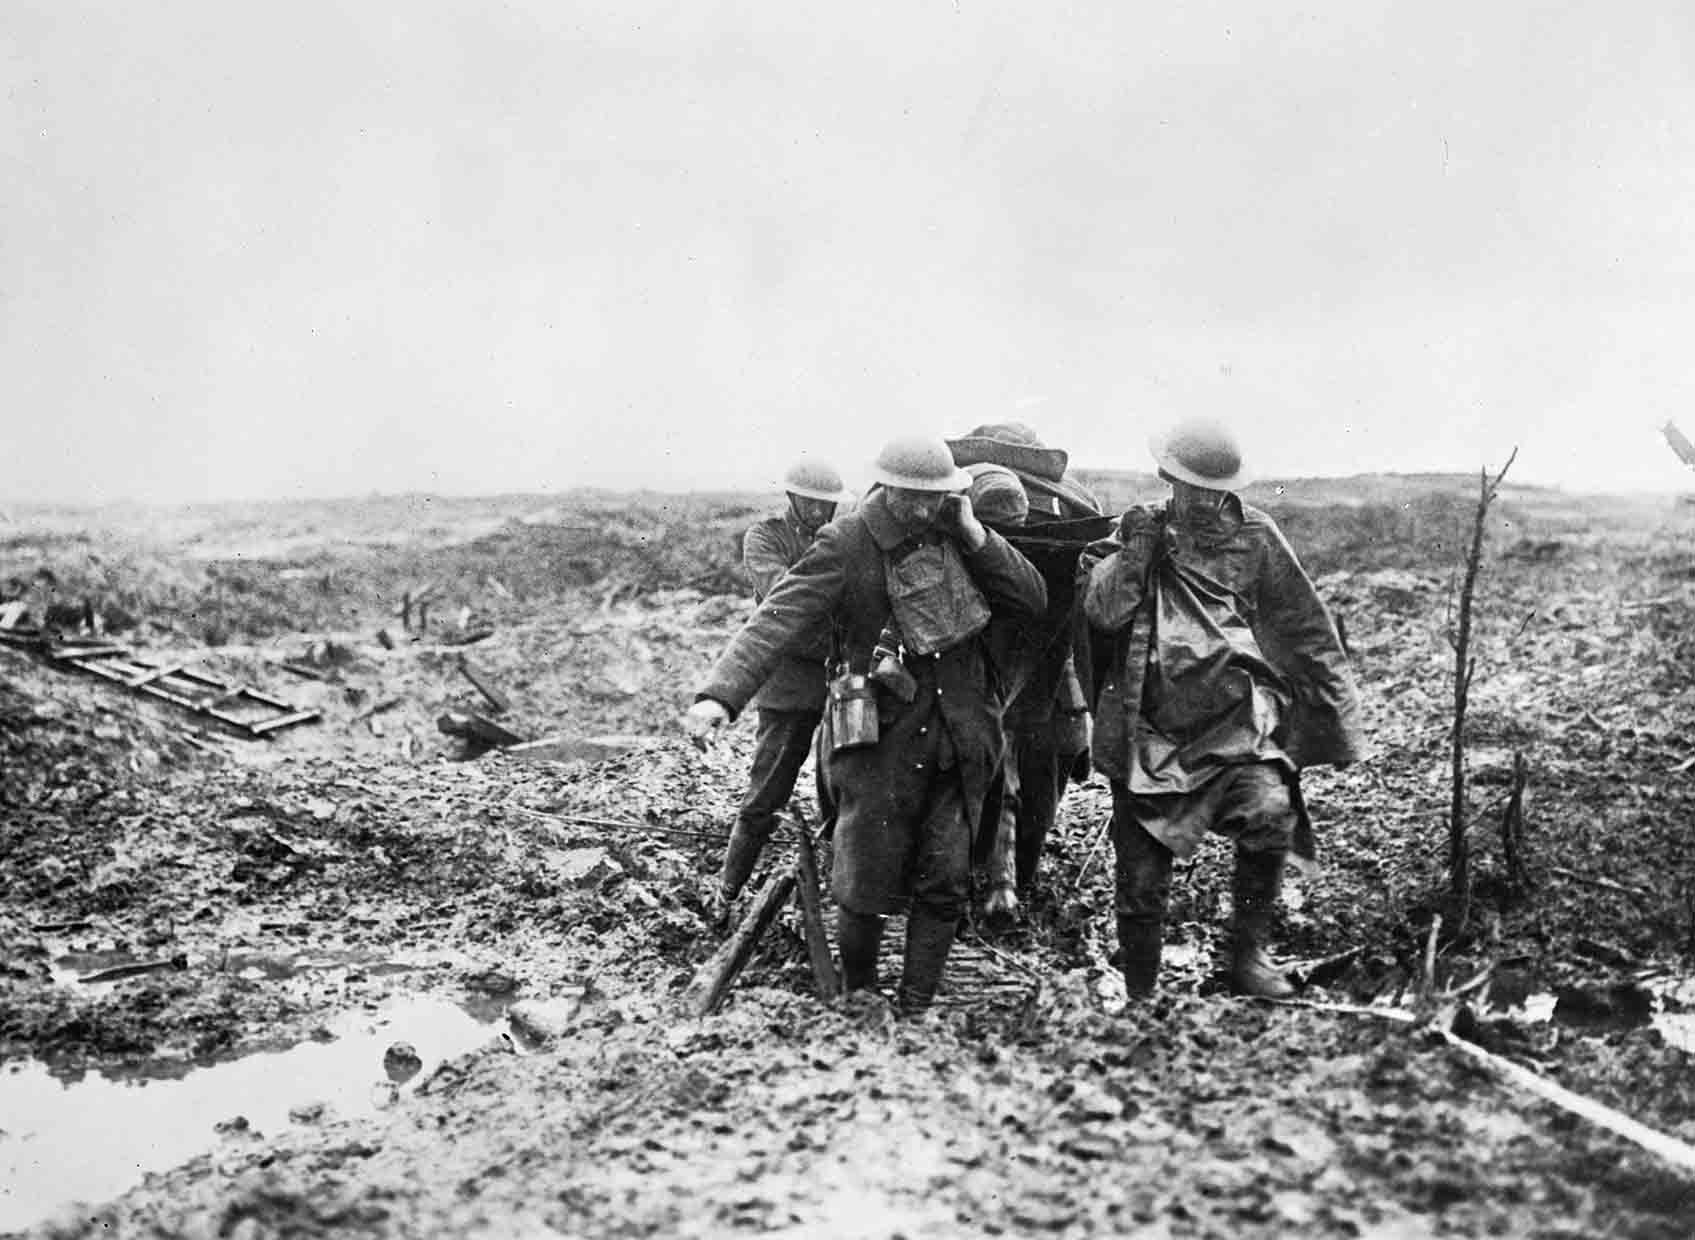 Stretcher bearers bringing in a wounded man over muddy ground at Passchendaele © IWM 2215 Otherwise please use - © IWM 2215